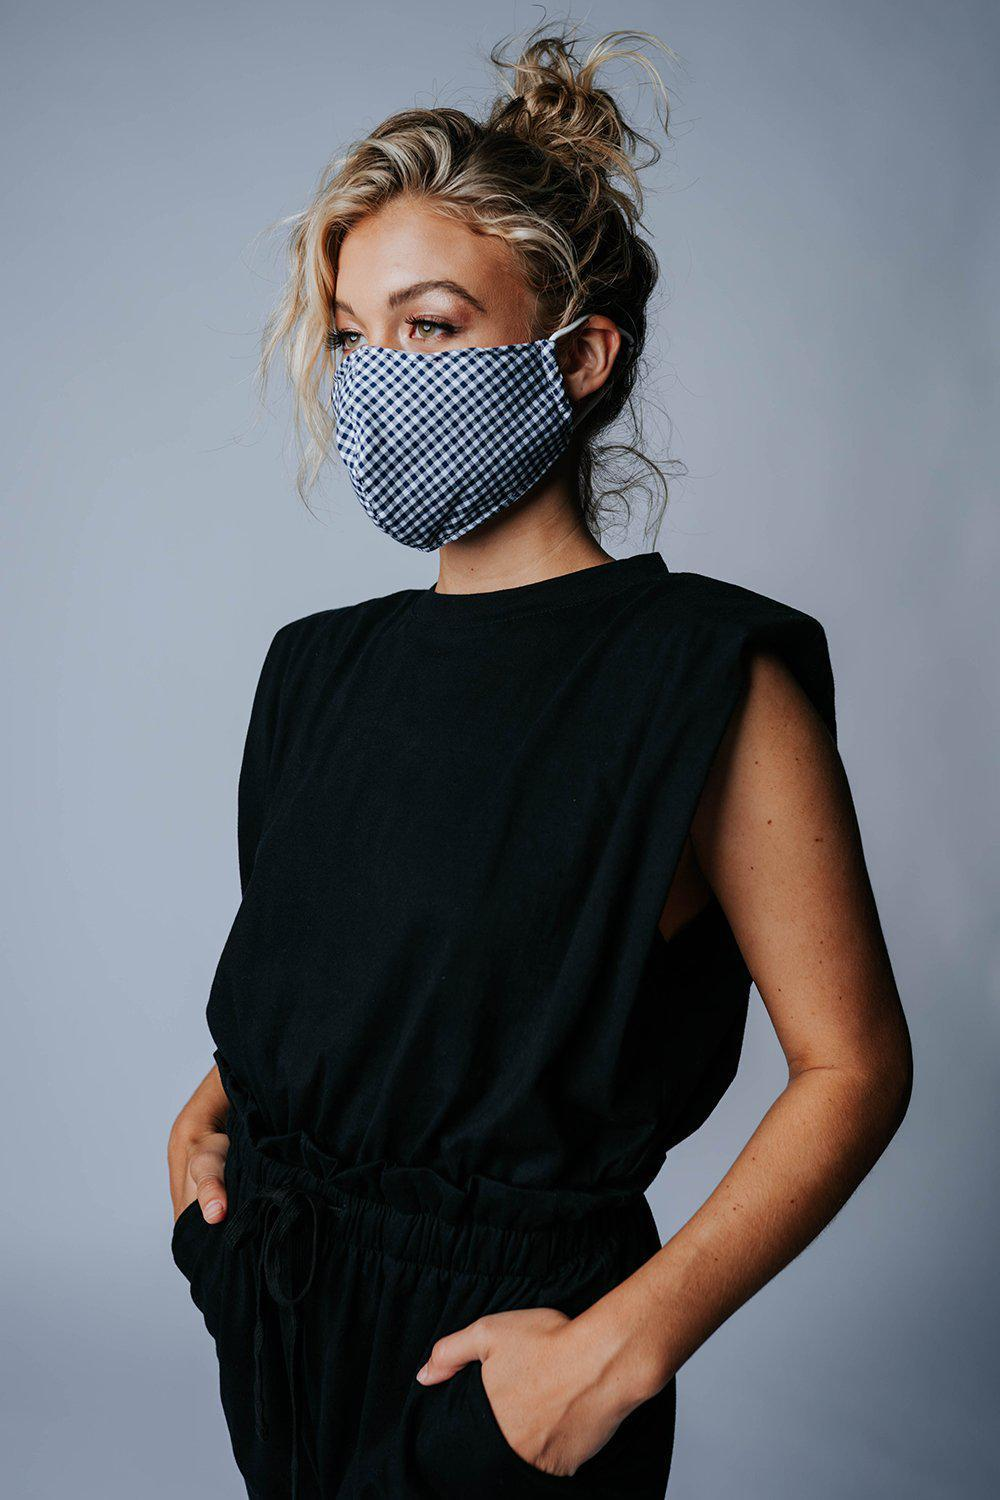 best_seller, Safe & Sound Gingham Face Mask in Blue, Accessory, women's clothing, dresses, skirts, coats, jackets, shoes, boots, tops, tee shirts, jeans, free people, levi's, rollas, jumpsuits, bottoms, tops, sweaters, pullovers, pants, shorts, sweats,.